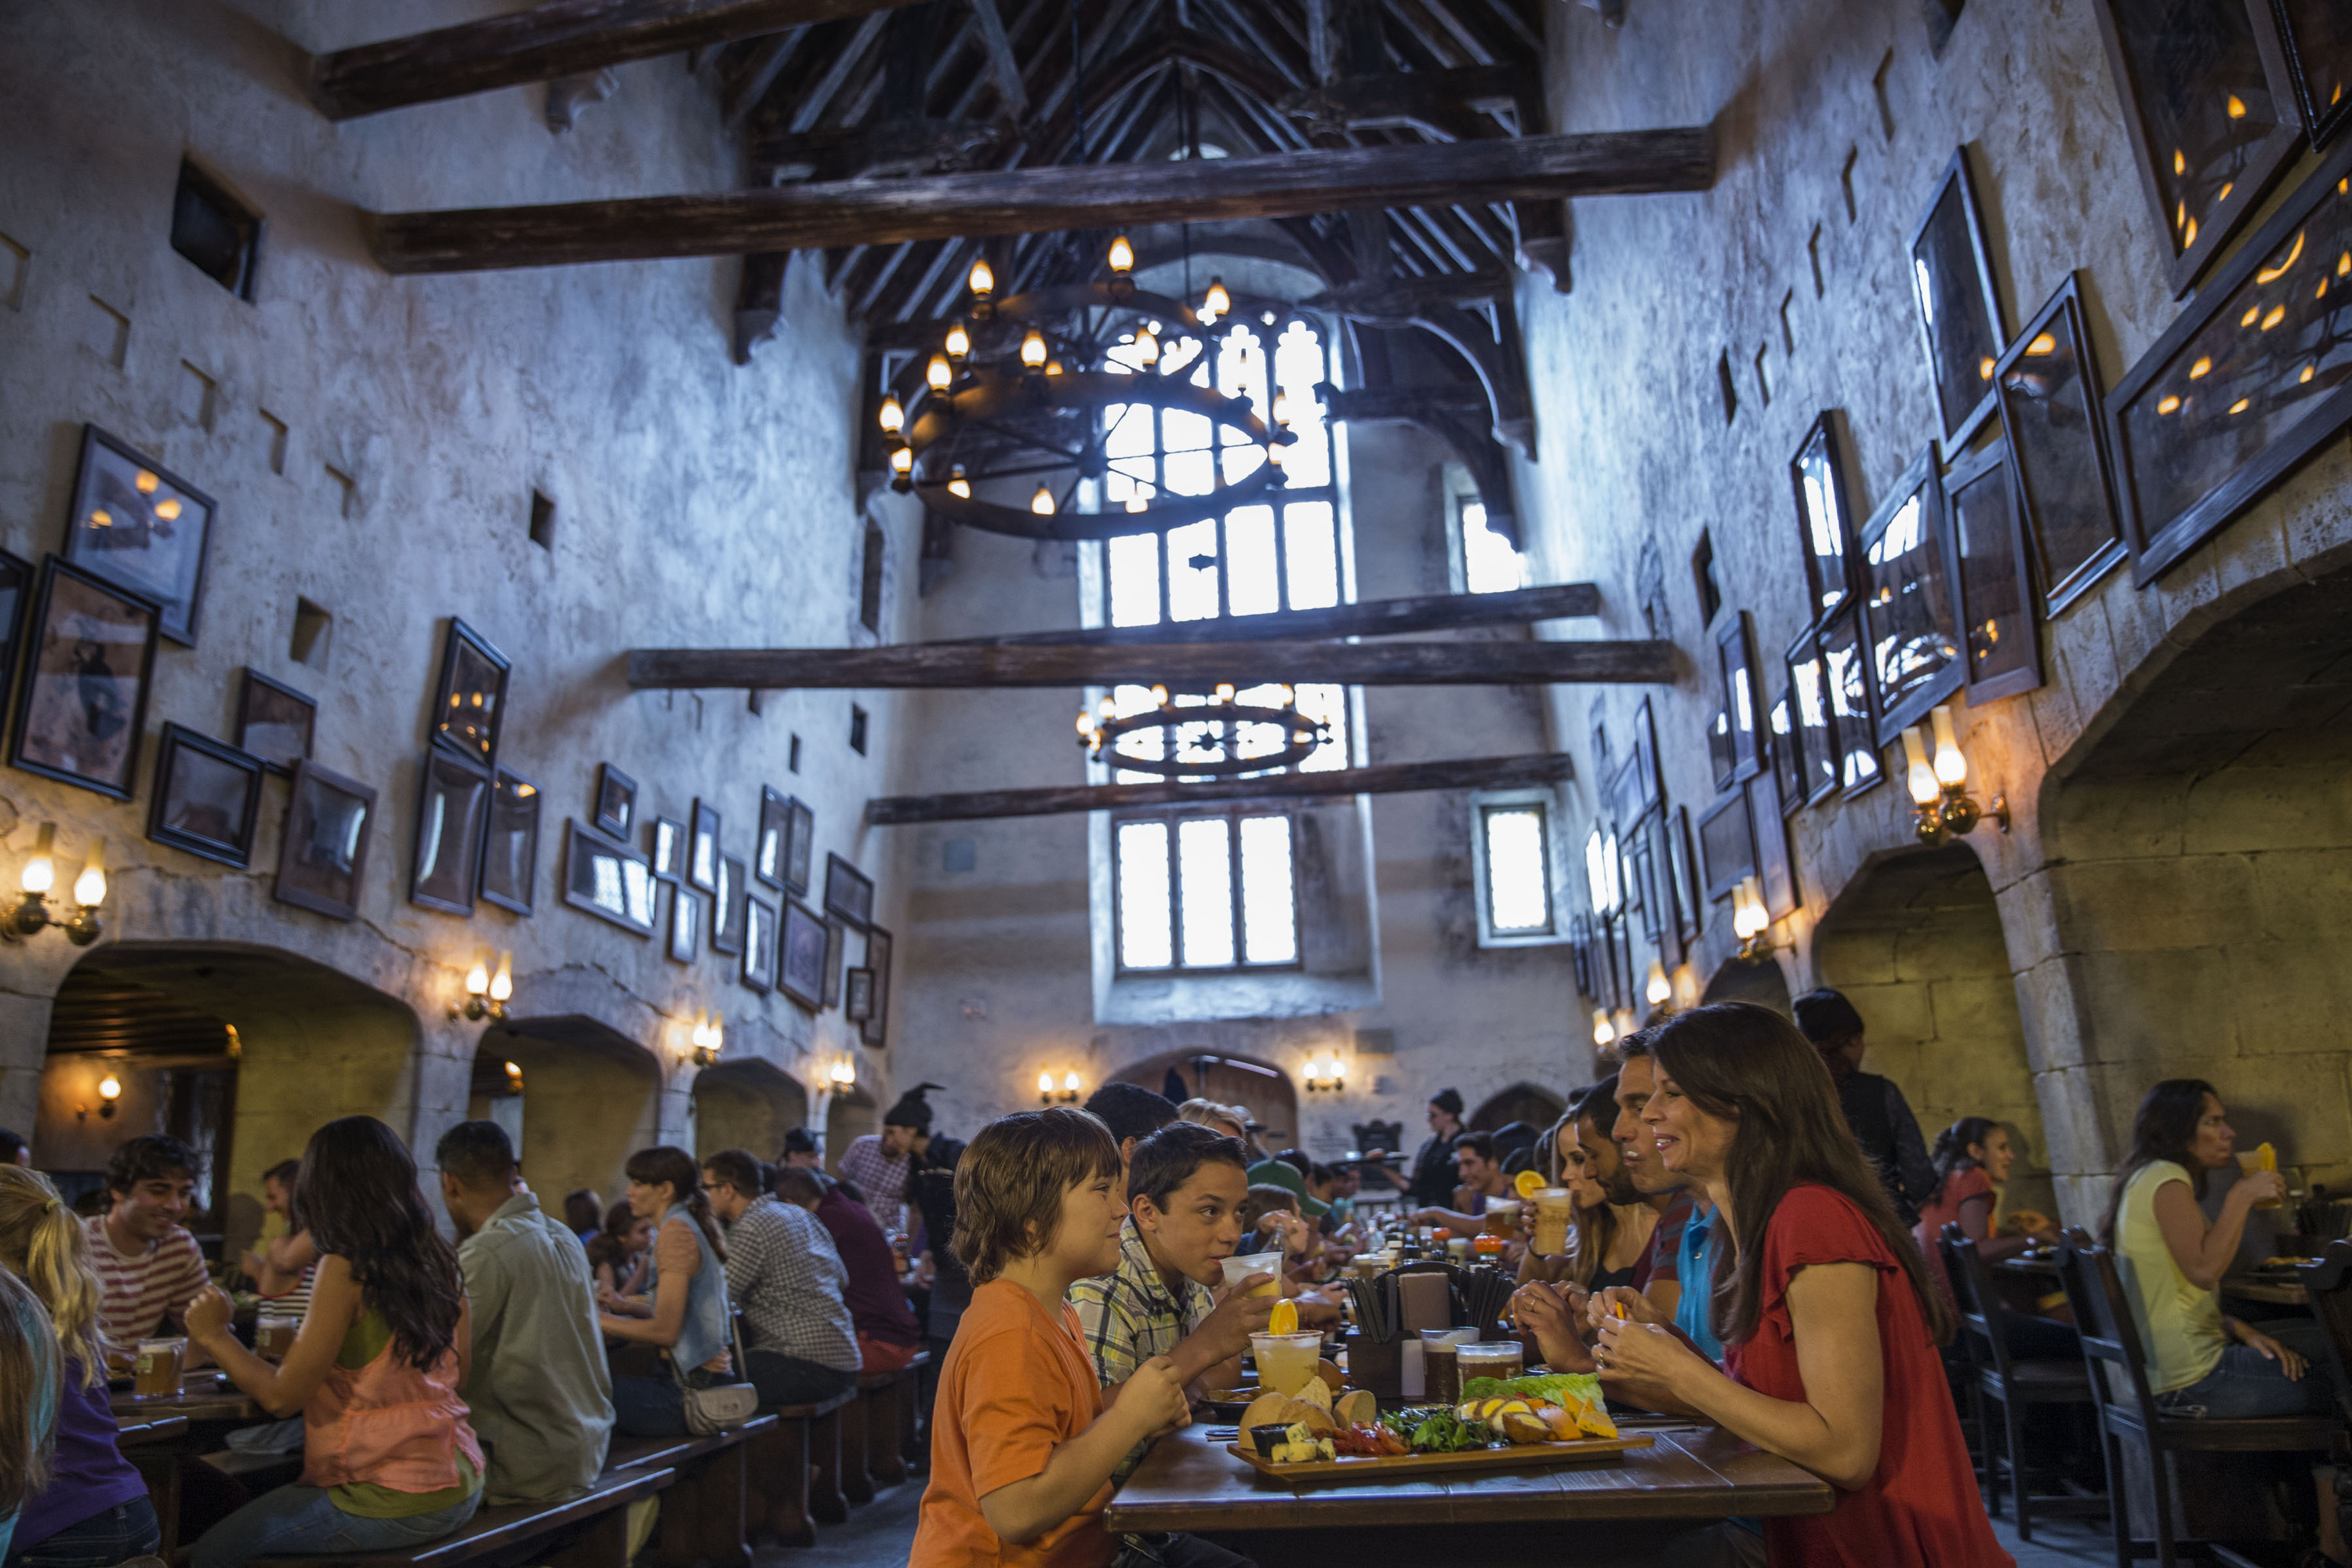 Leaky Cauldron, The Wizarding World of Harry Potter at Universal Studios Orlando